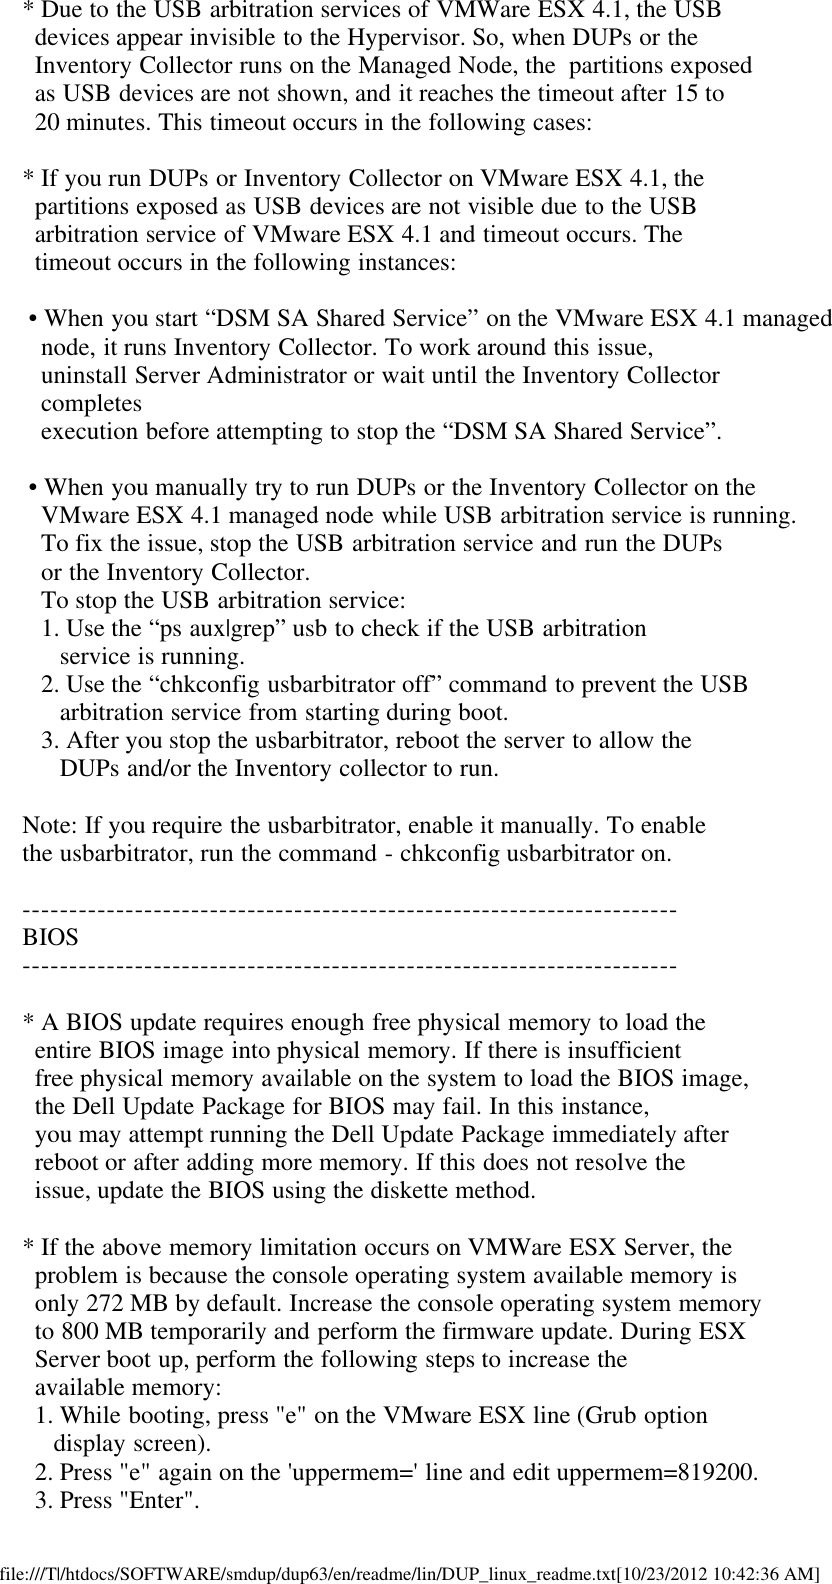 Dell Update Packages Version 6 3 Owners Manual 6 3 Readme (For Linux)